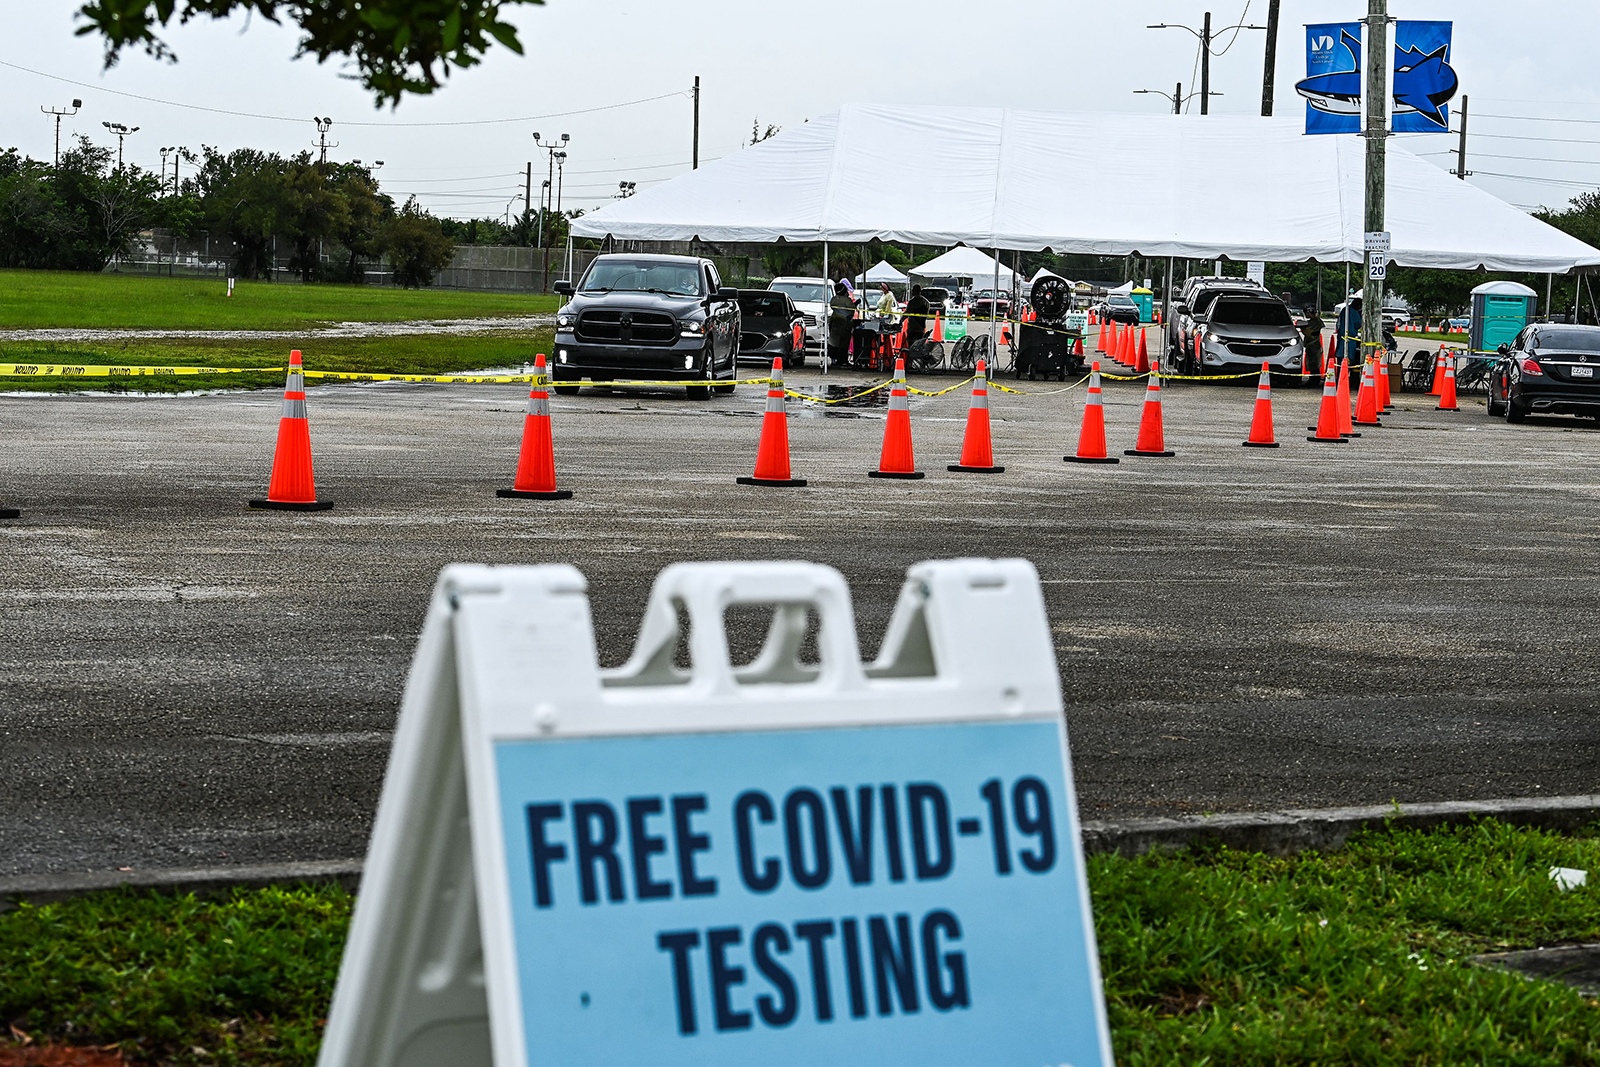 Cars line up for Covid-19 testing in Miami, on August 3.